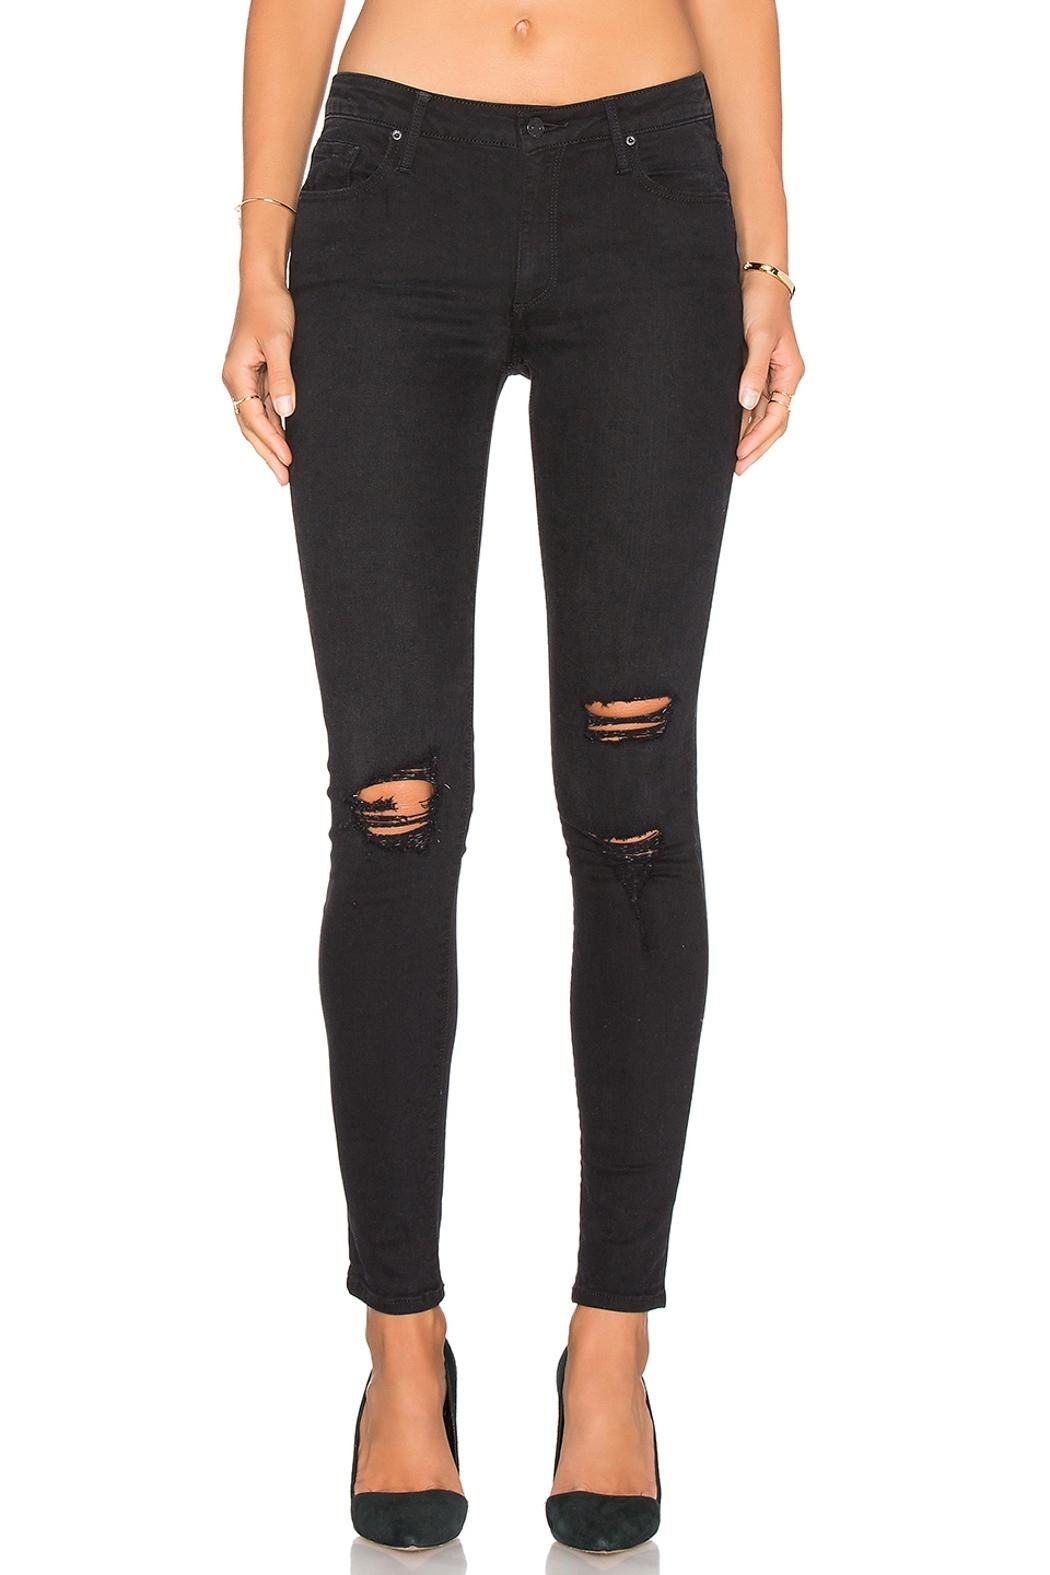 Black Orchid Denim Jude Mid Rise Super Skinny Denim - Front Full Image